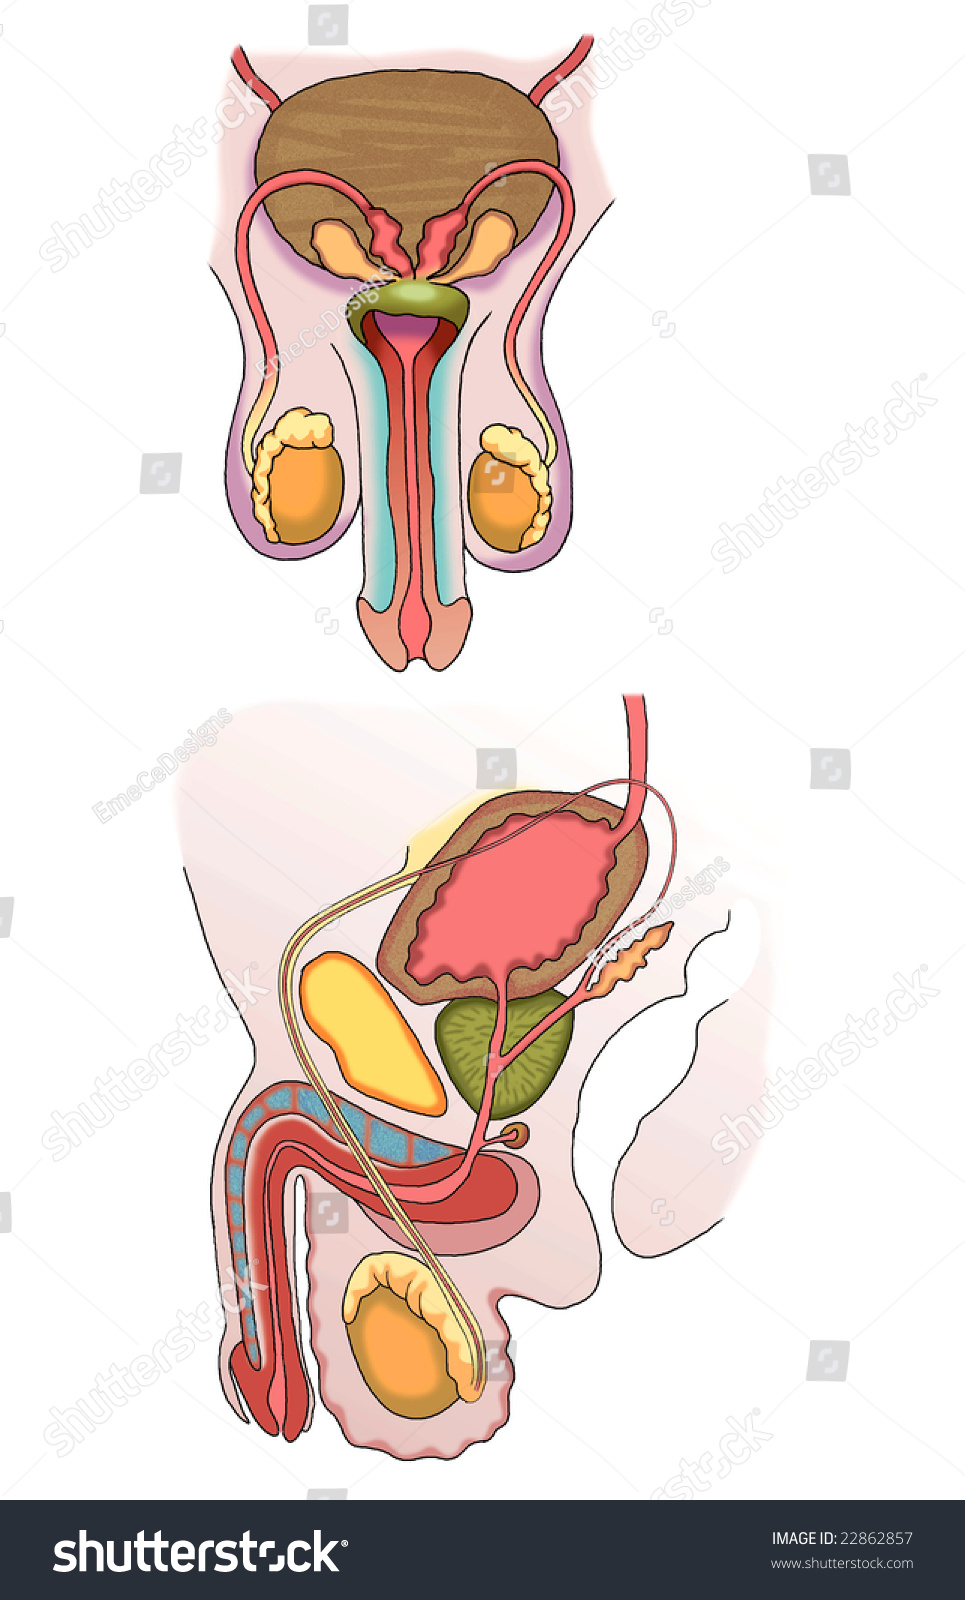 Male Reproductive System Stock Photo 22862857   Shutterstock